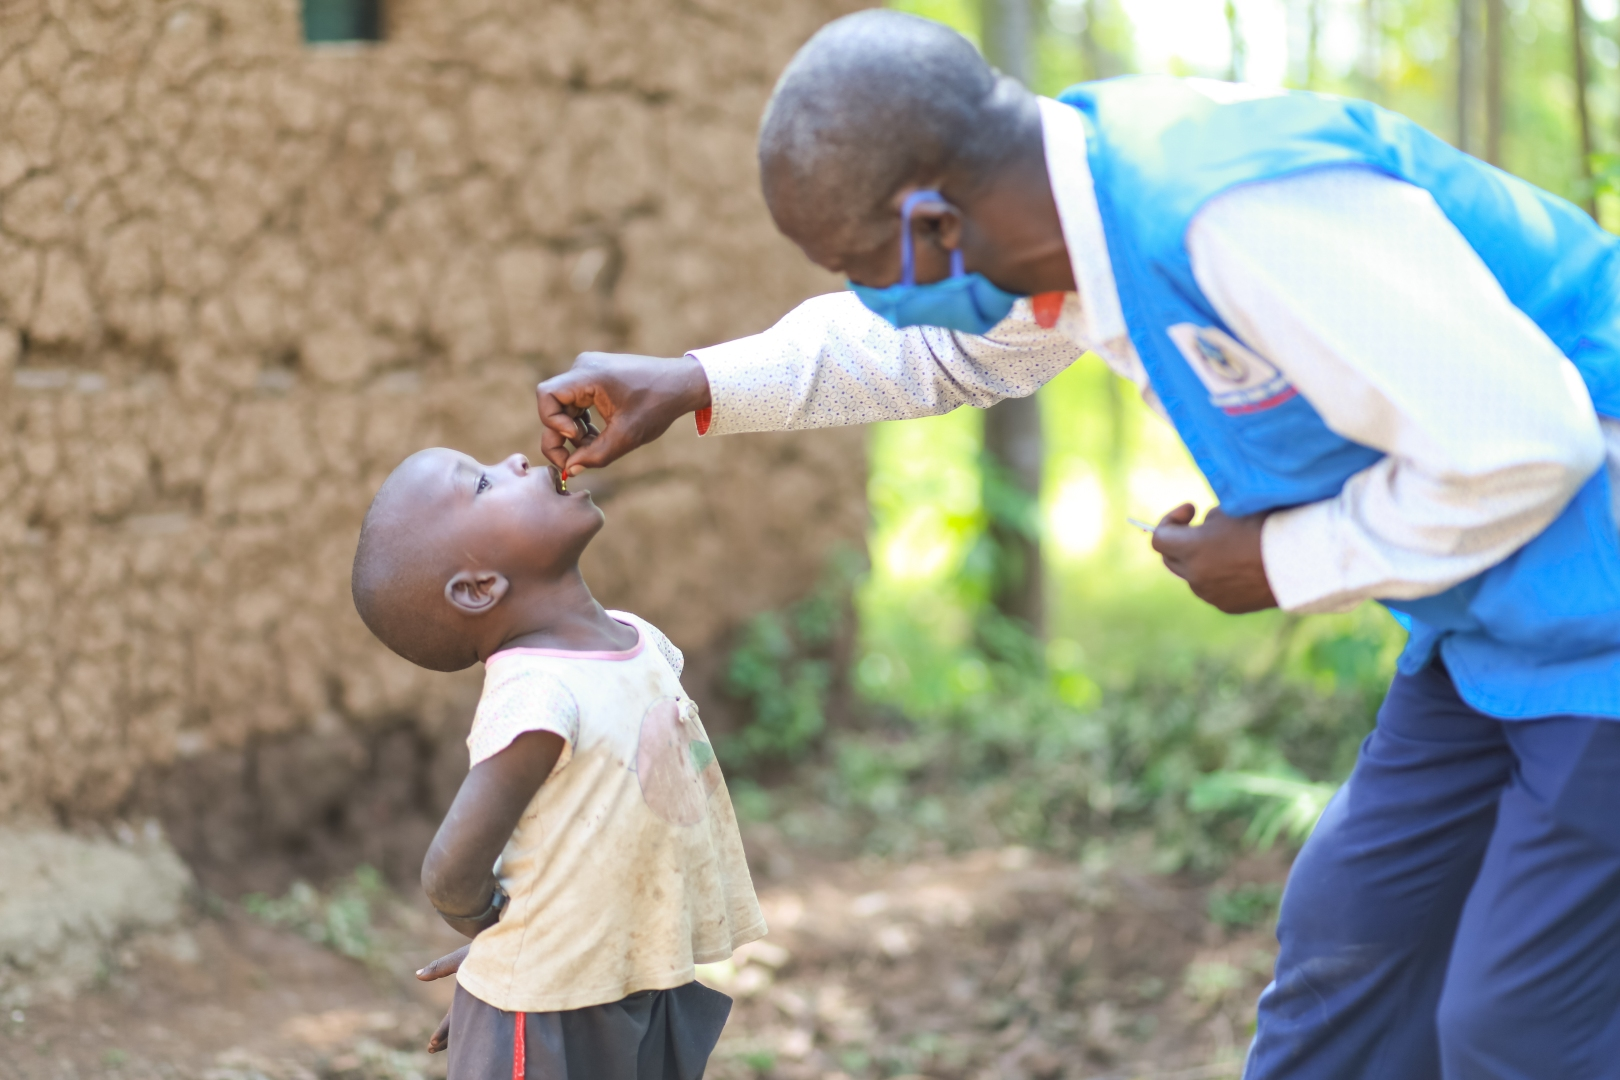 A health worker administers vitamin A drops to a child in Kenya